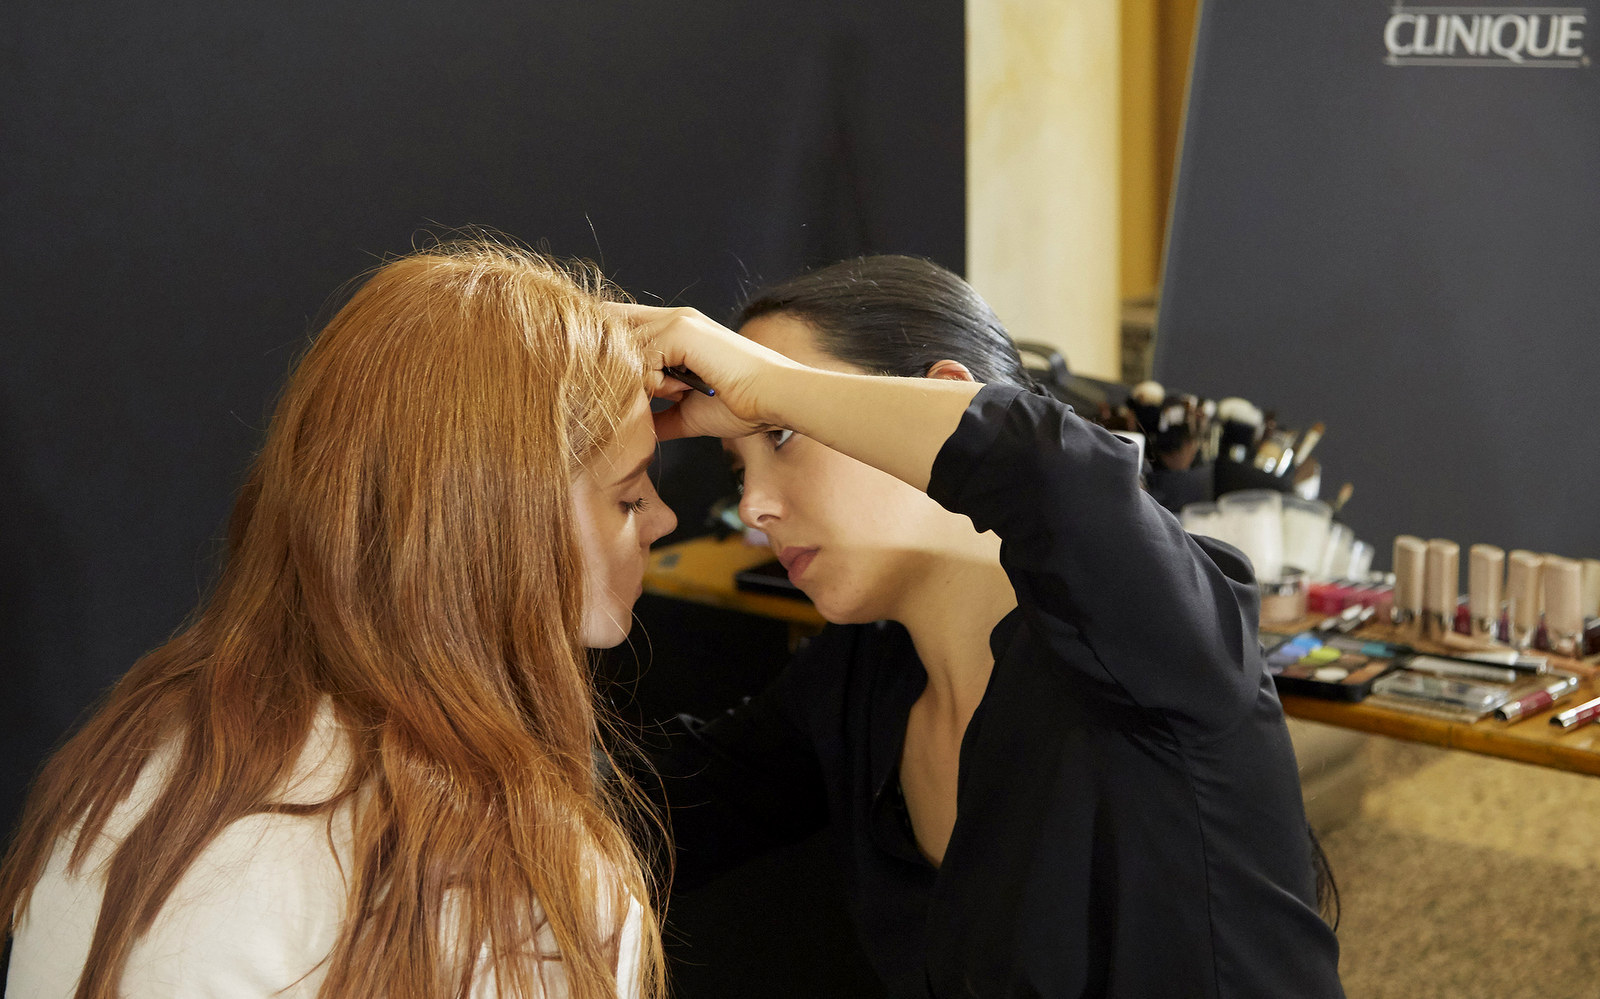 MFW, ss16, Milan Fashion Week, Clinique, backstage, Beauty & Care, beauty, jabe, Cristiano Burani, makeup,Culture & trend